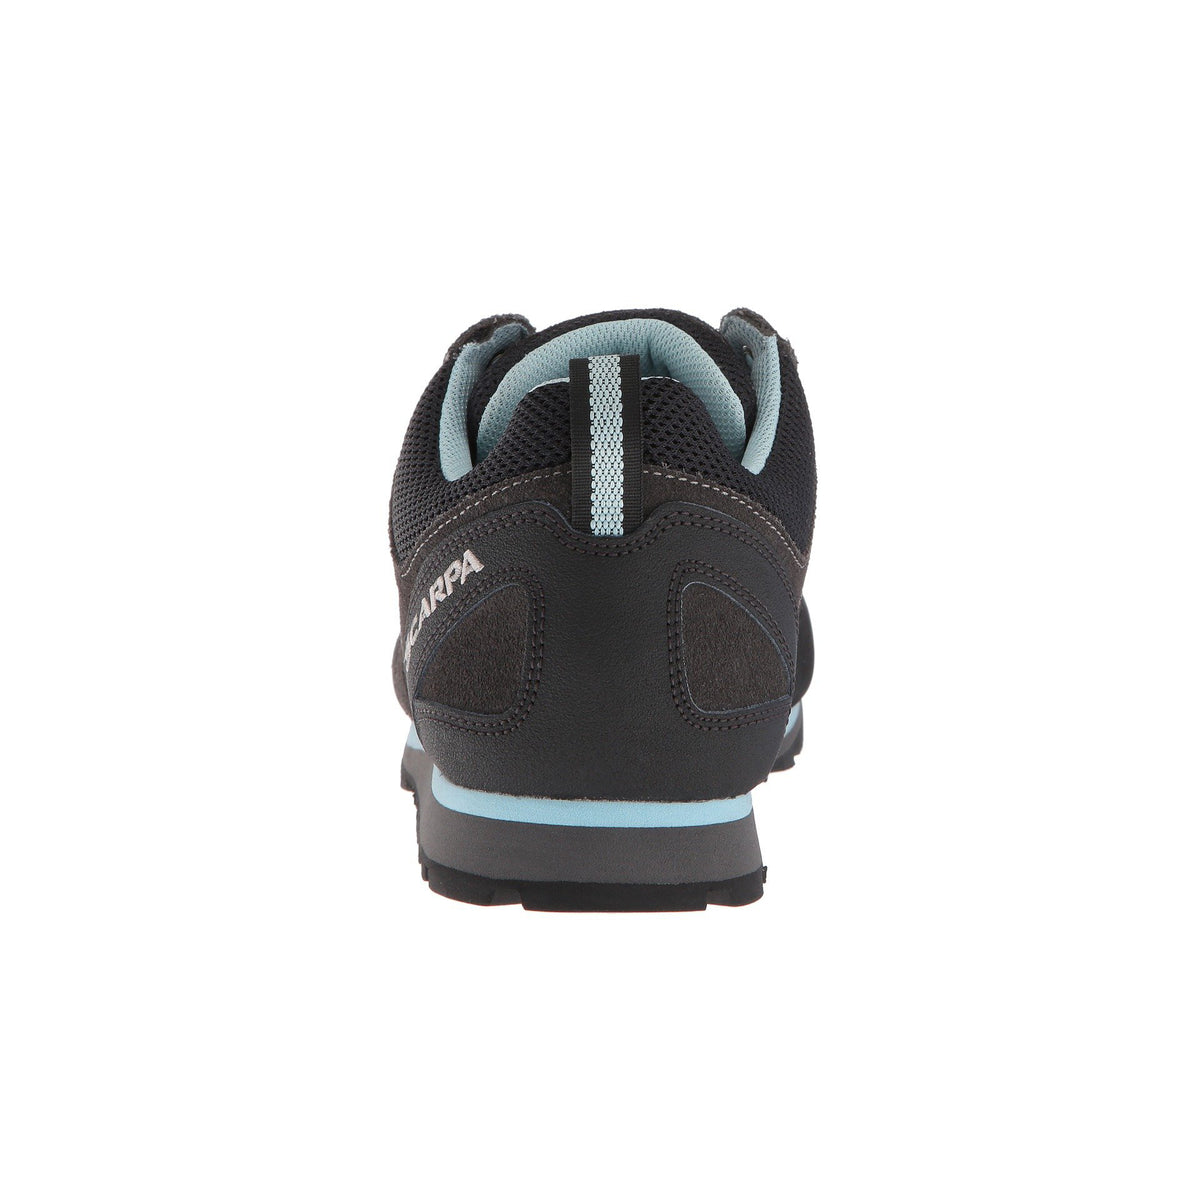 Scarpa Crux Womens approach shoe view from behind, showing the heel design detail